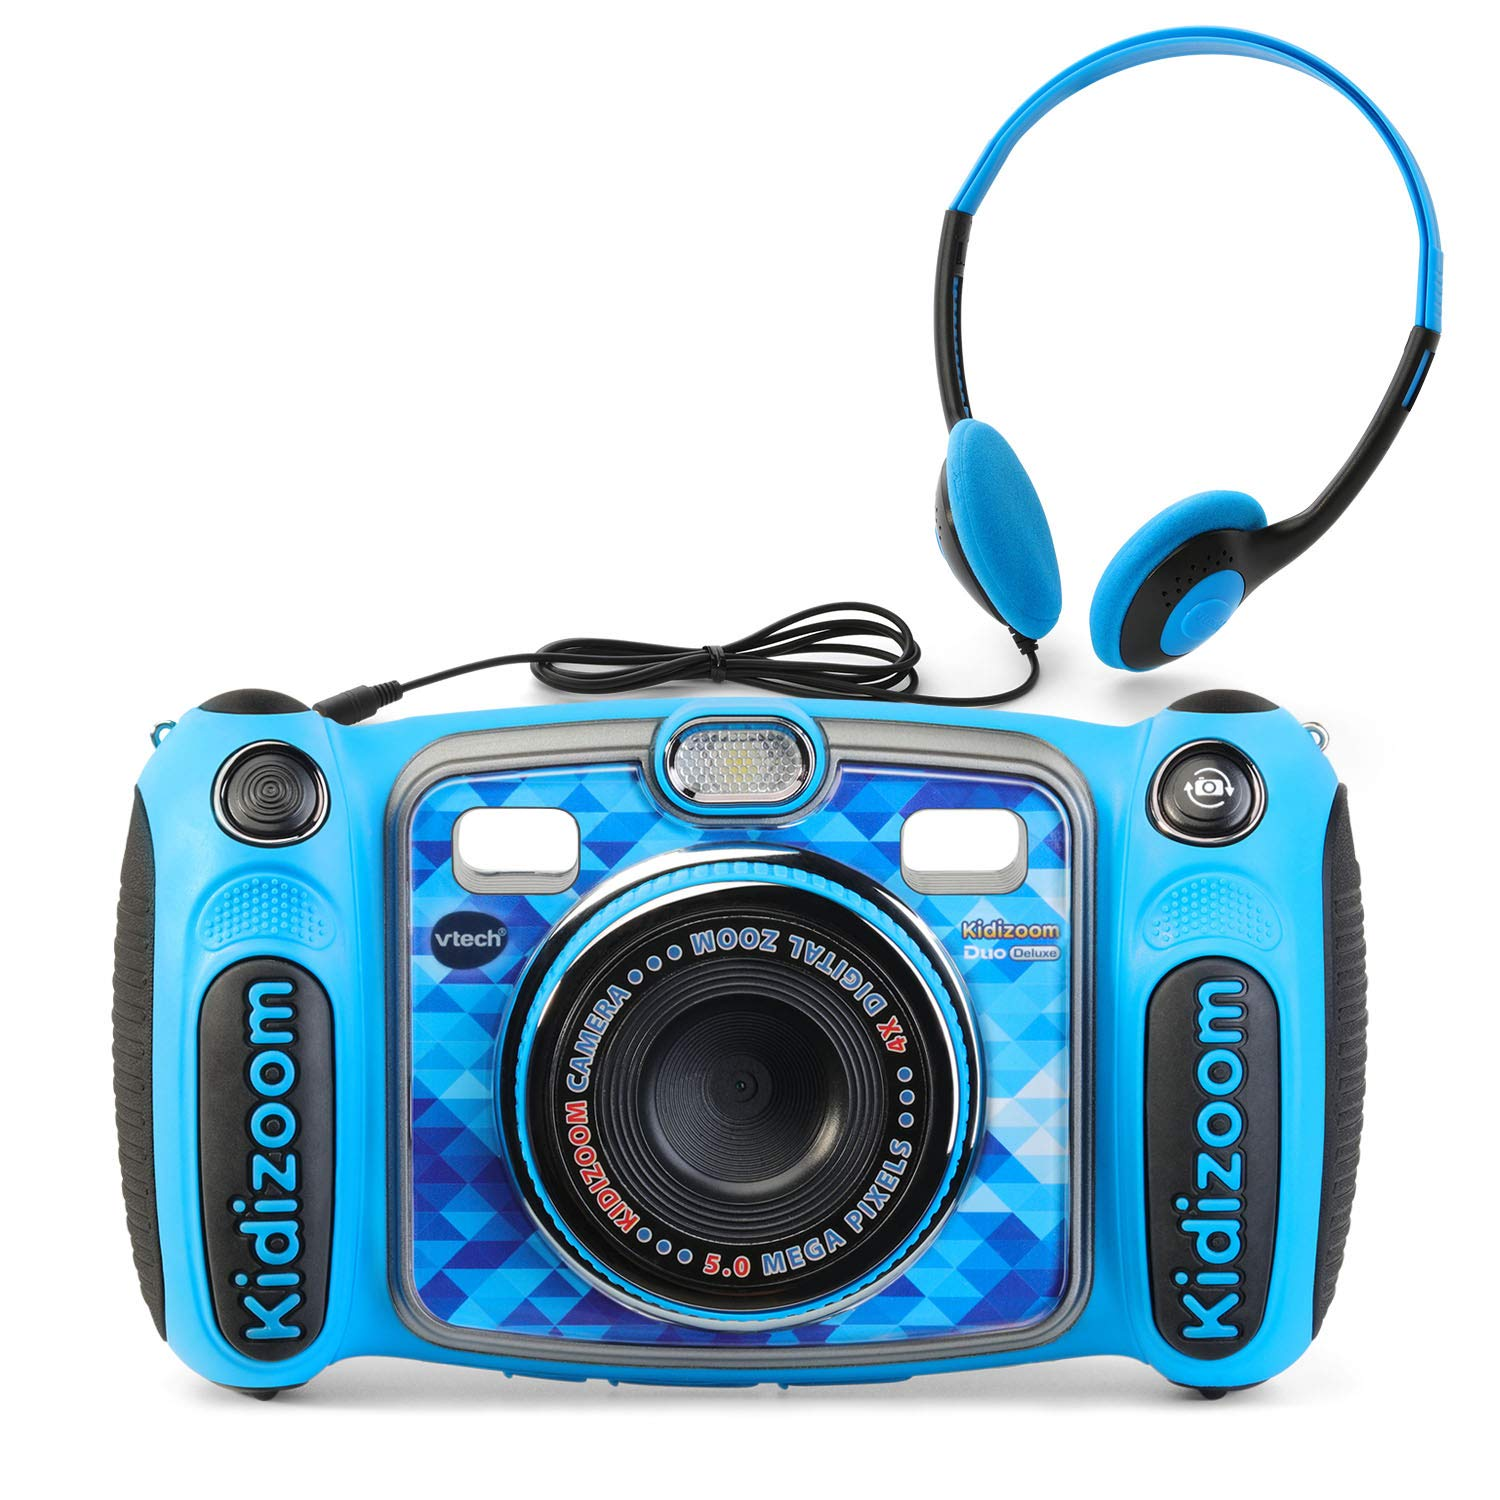 VTech Kidizoom Duo 5.0 Deluxe Digital Selfie Camera with MP3 Player & Headphones, Blue by VTech (Image #1)